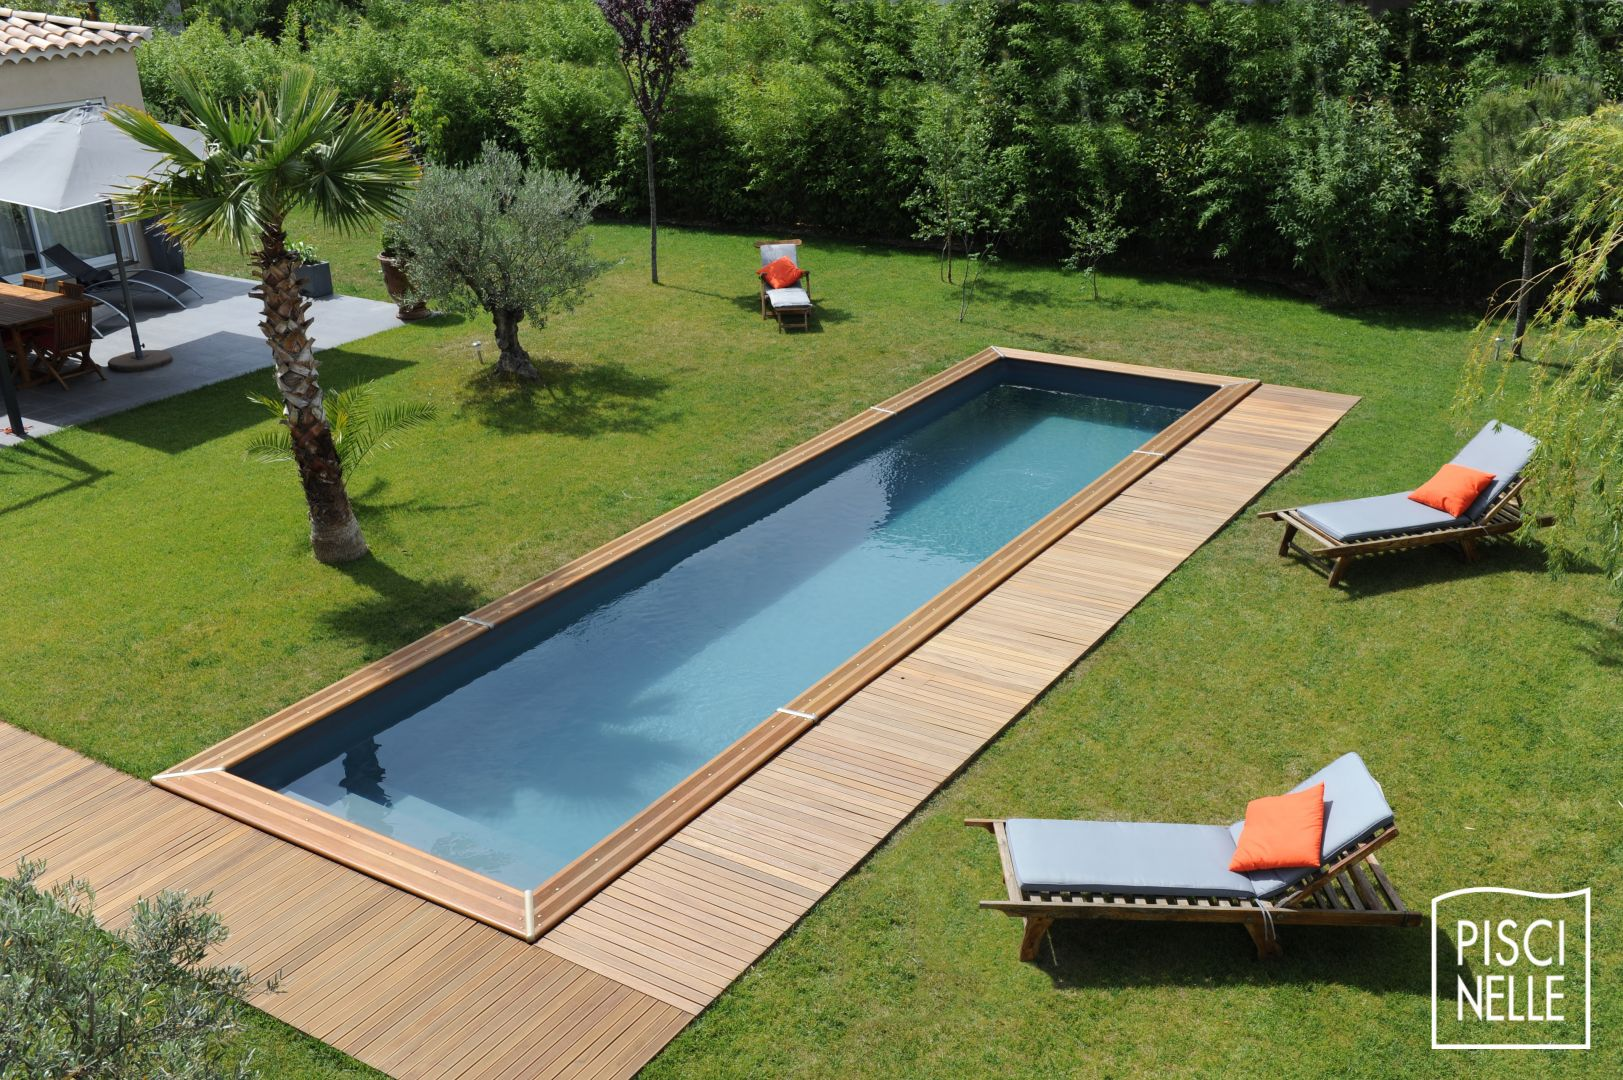 Piscine enterr e les piscines enterr es en kit par for Kit piscine semi enterree